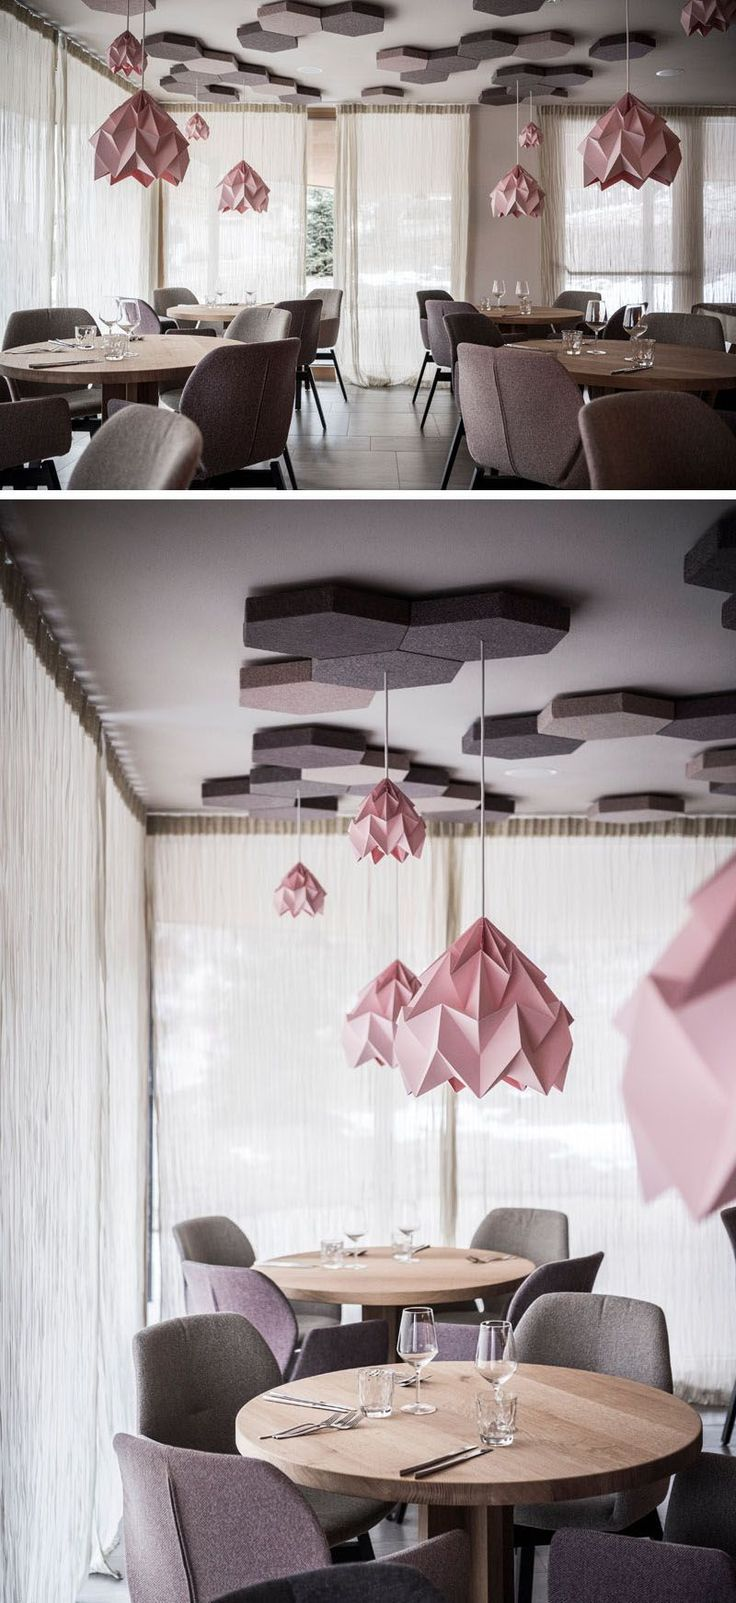 The contemporary pink light fixtures hanging from honeycomb details are the focal point in this modern hotel restaurant. Round wood tables, with dusty pink and gray wool upholstered chairs help to create a cozy atmosphere.